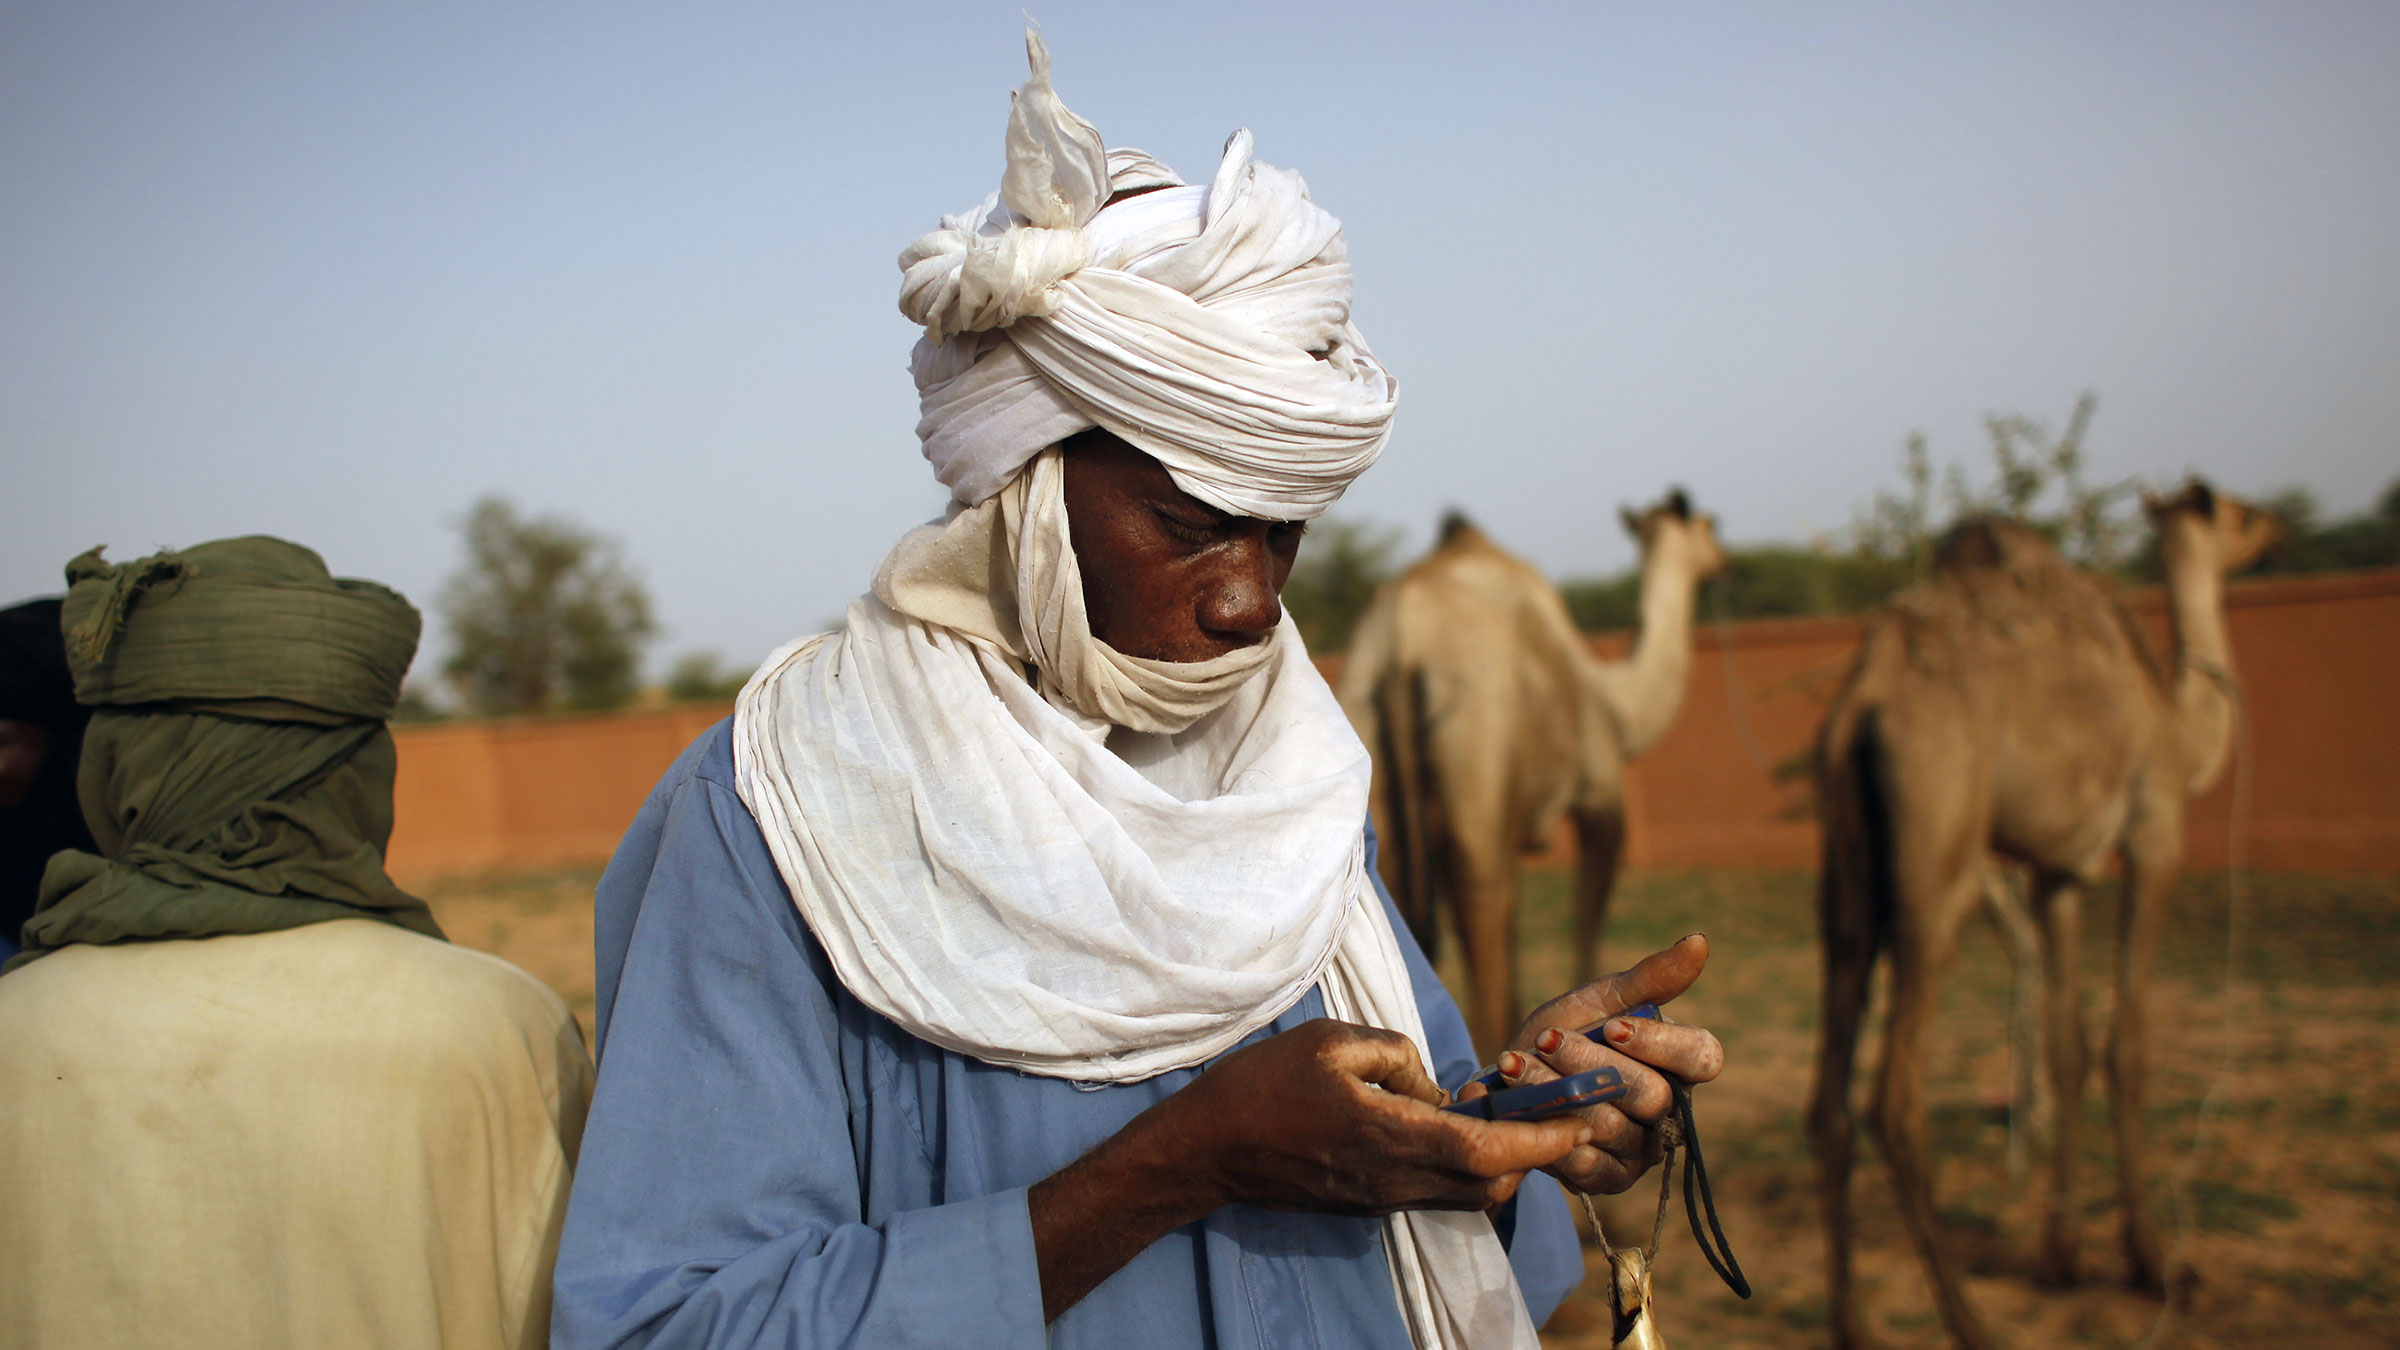 Wikipedia was launched in Niger on July 2, 2012.